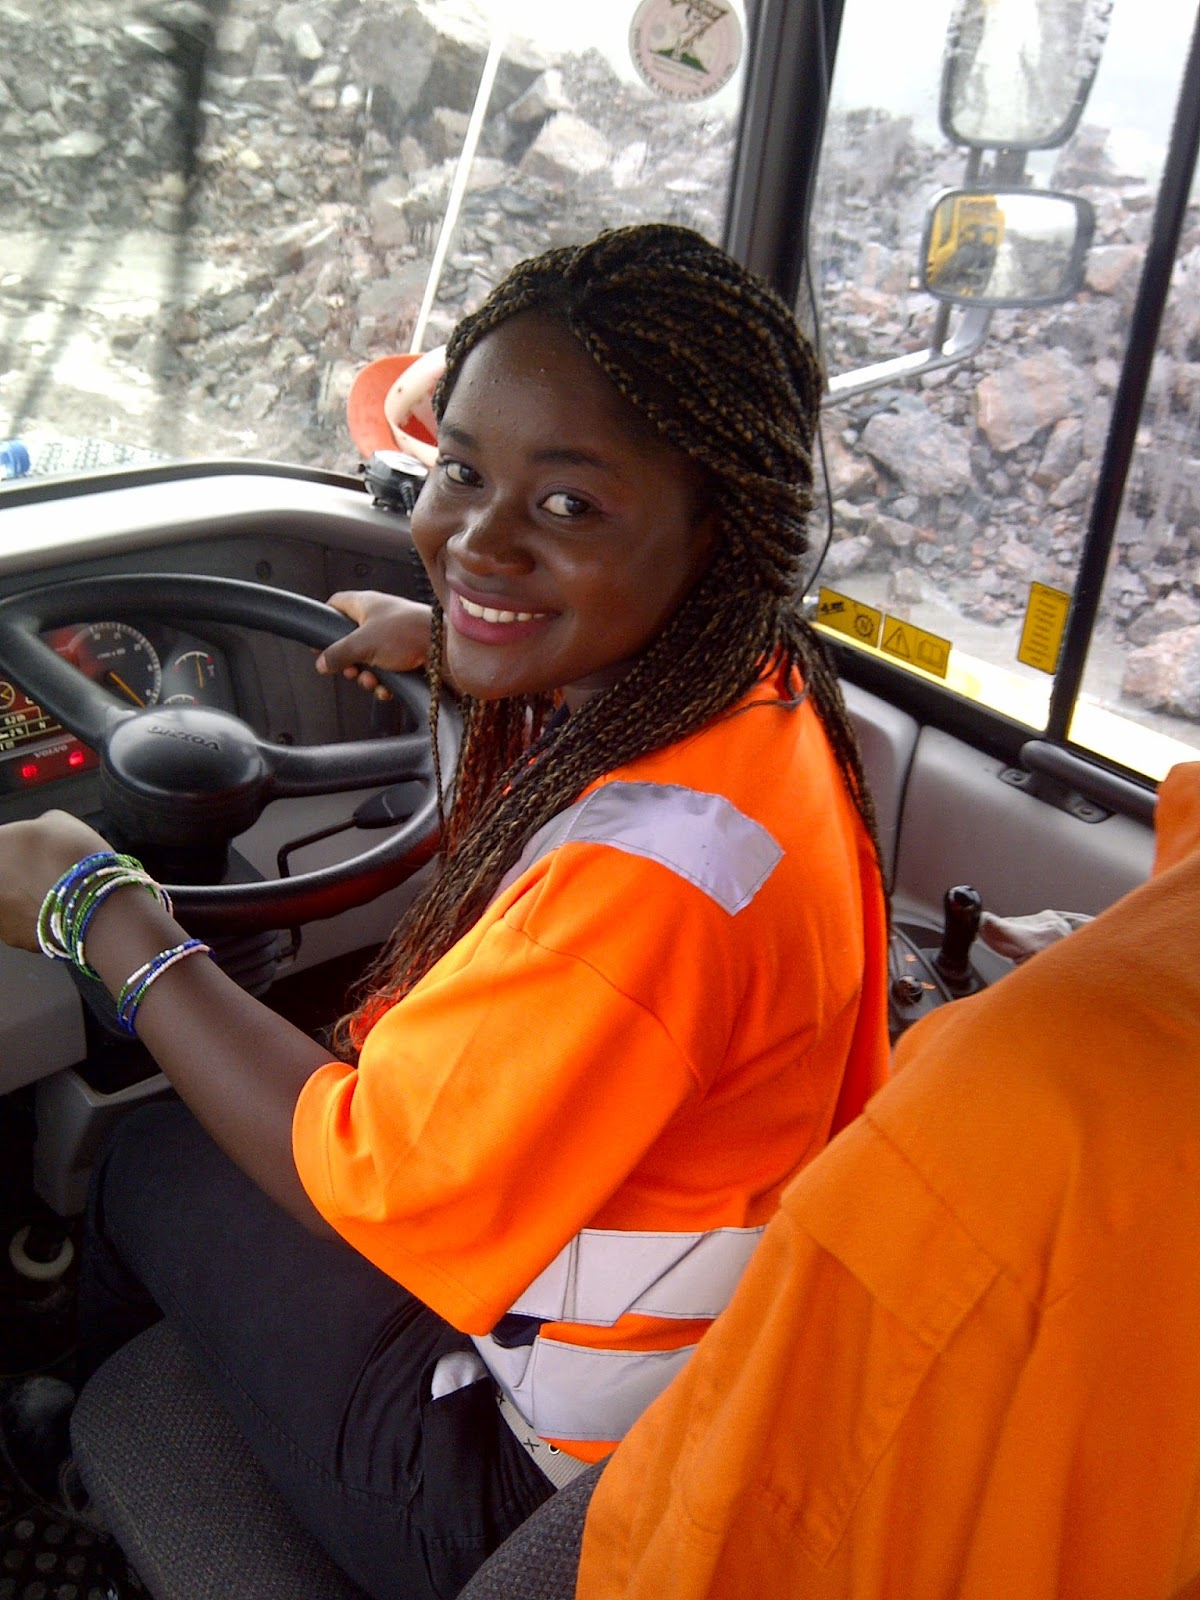 Ruby behind the wheel of a giant mining vehicle. (Photo Credit: Ruby B. Johnson.)